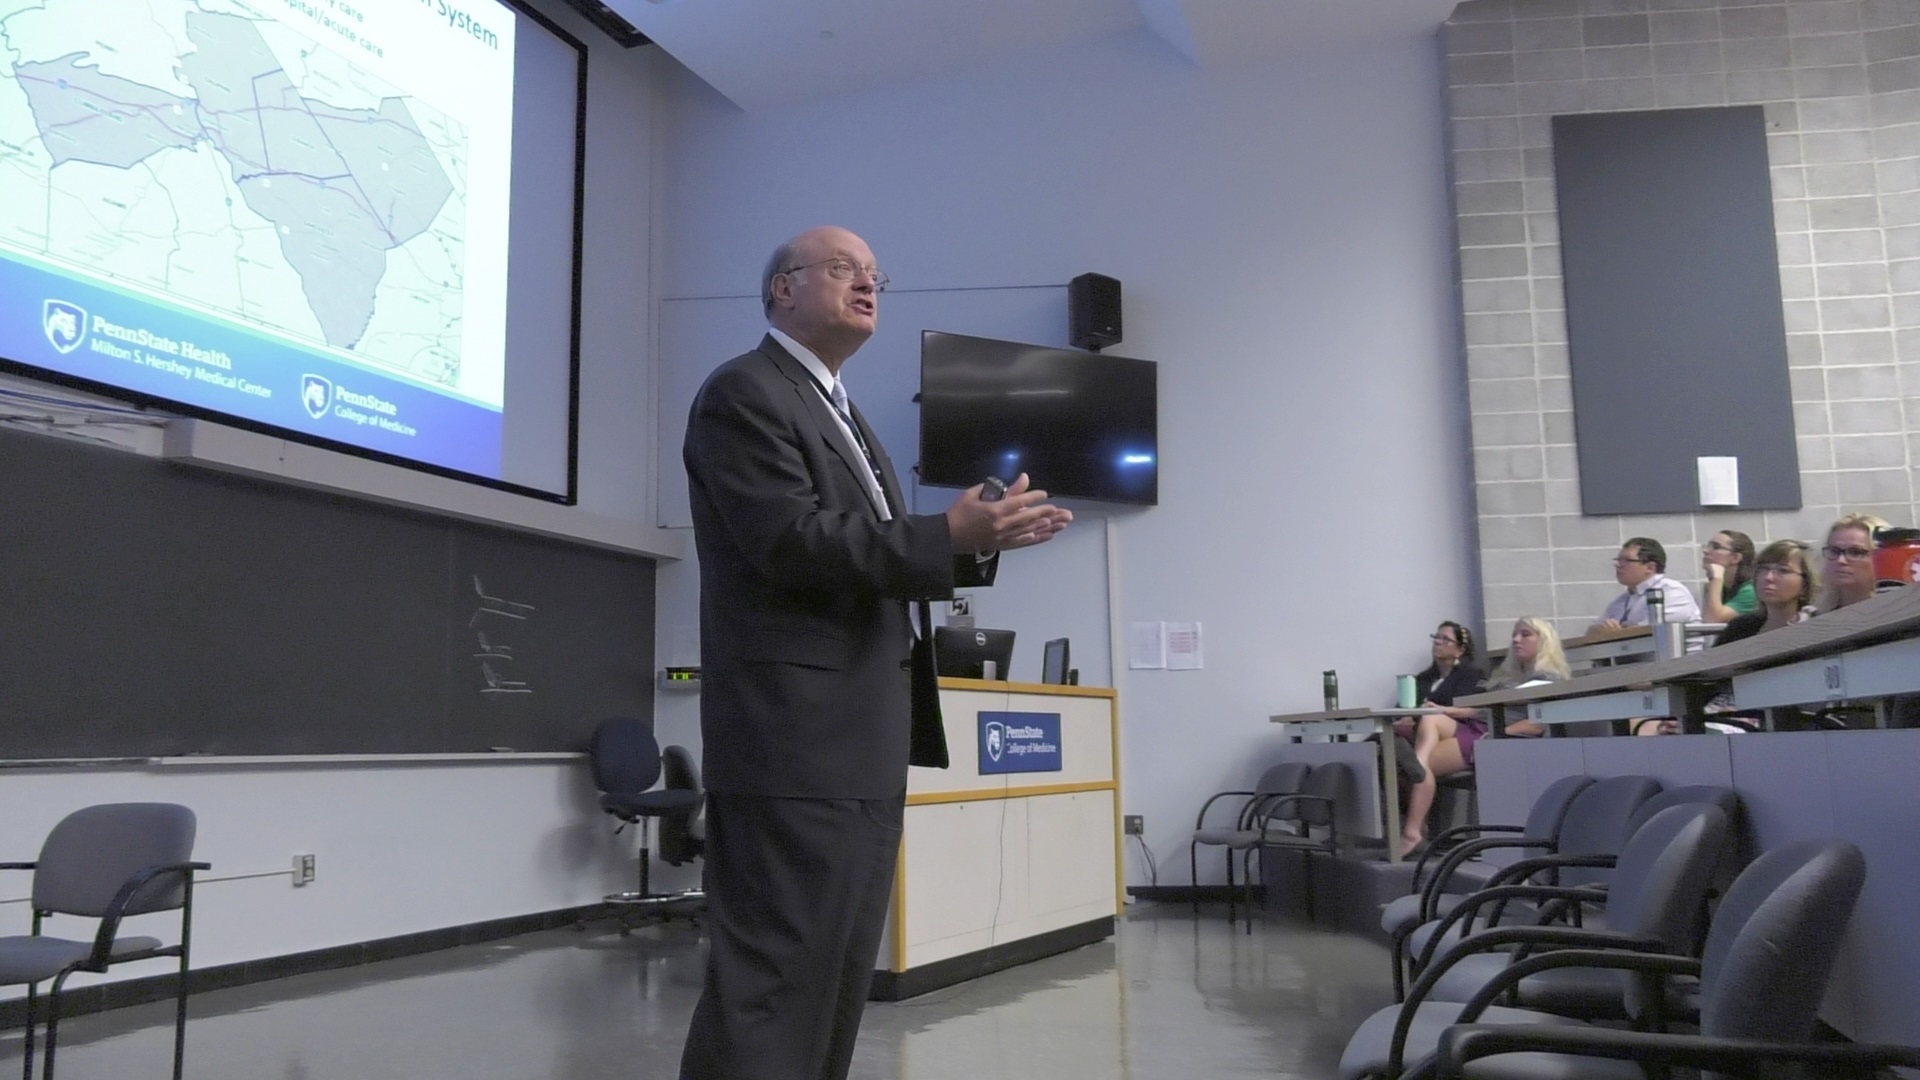 Dr. Craig Hillemeier speaks in front of a class of Penn State College of Medicine students. He is wearing a suit, tie and glasses. Behind him is a screen with a PowerPoint slide of a map. The students are seated in stadium seats. A row of empty chairs is in front of Dr. Hillemeier. On the wall is a large monitor. A gray rectangle is mounted on a brick wall behind the students.